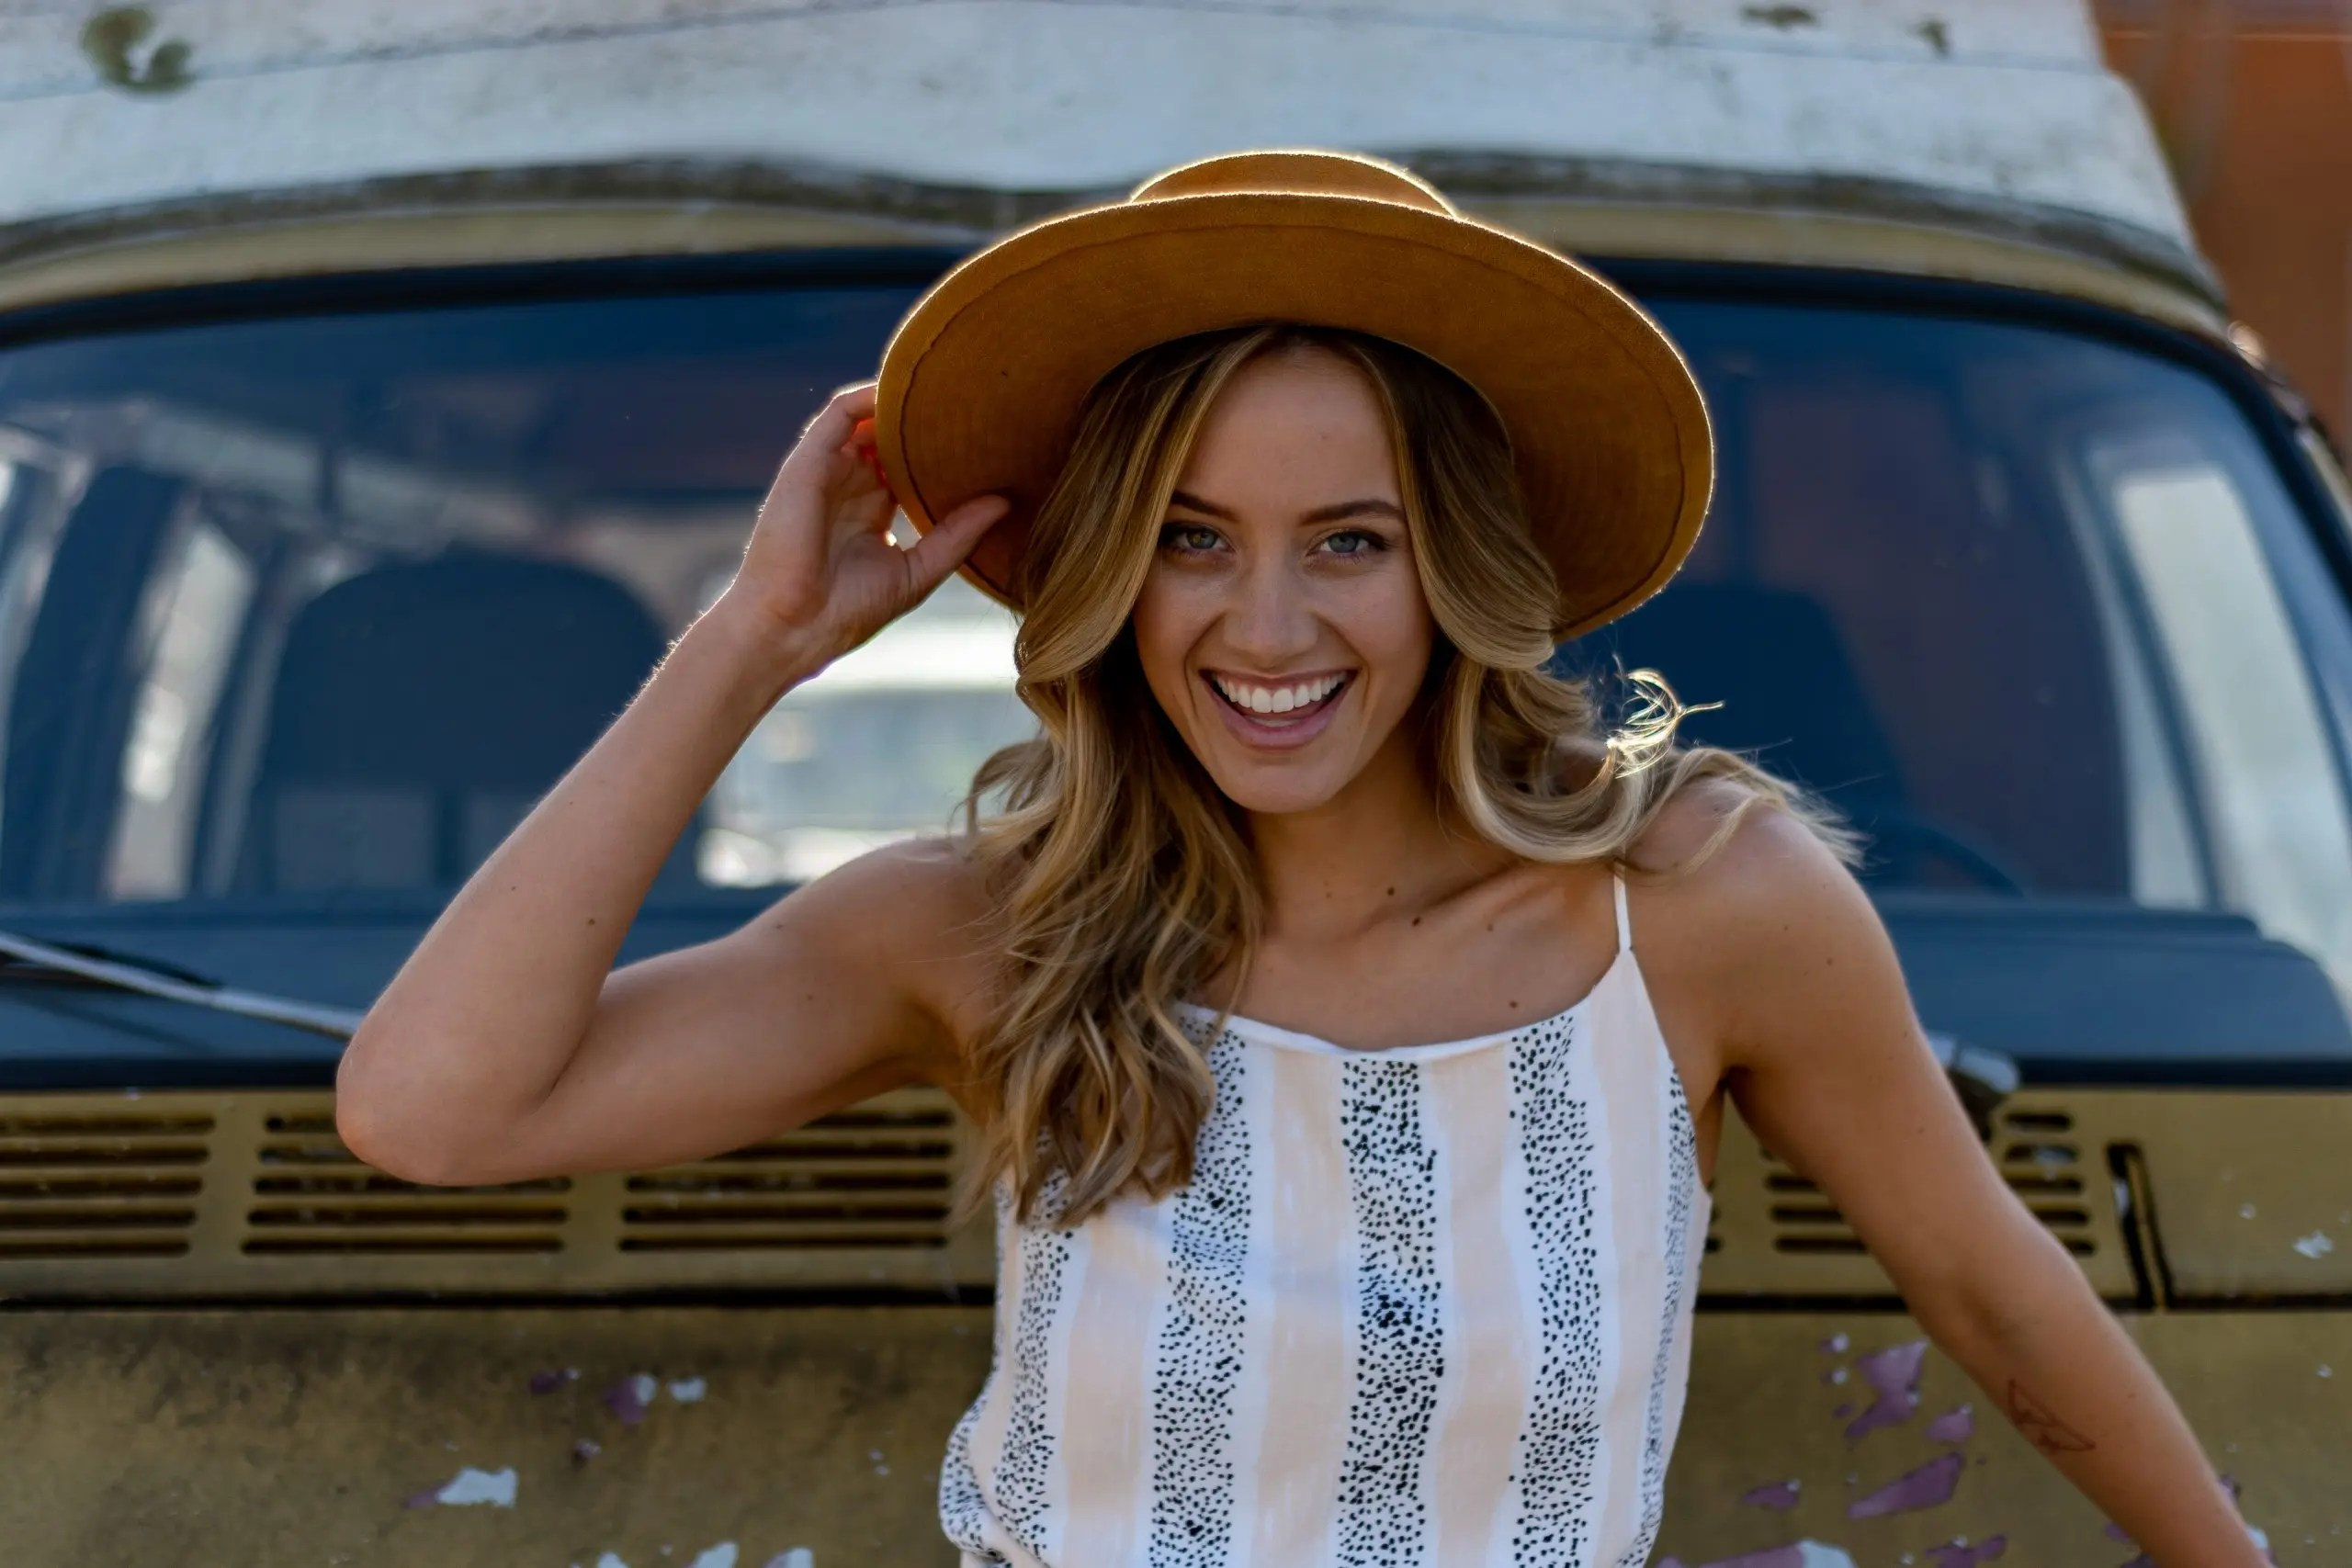 Carly Lane wearing a hat posing in front of a old school yellow van.